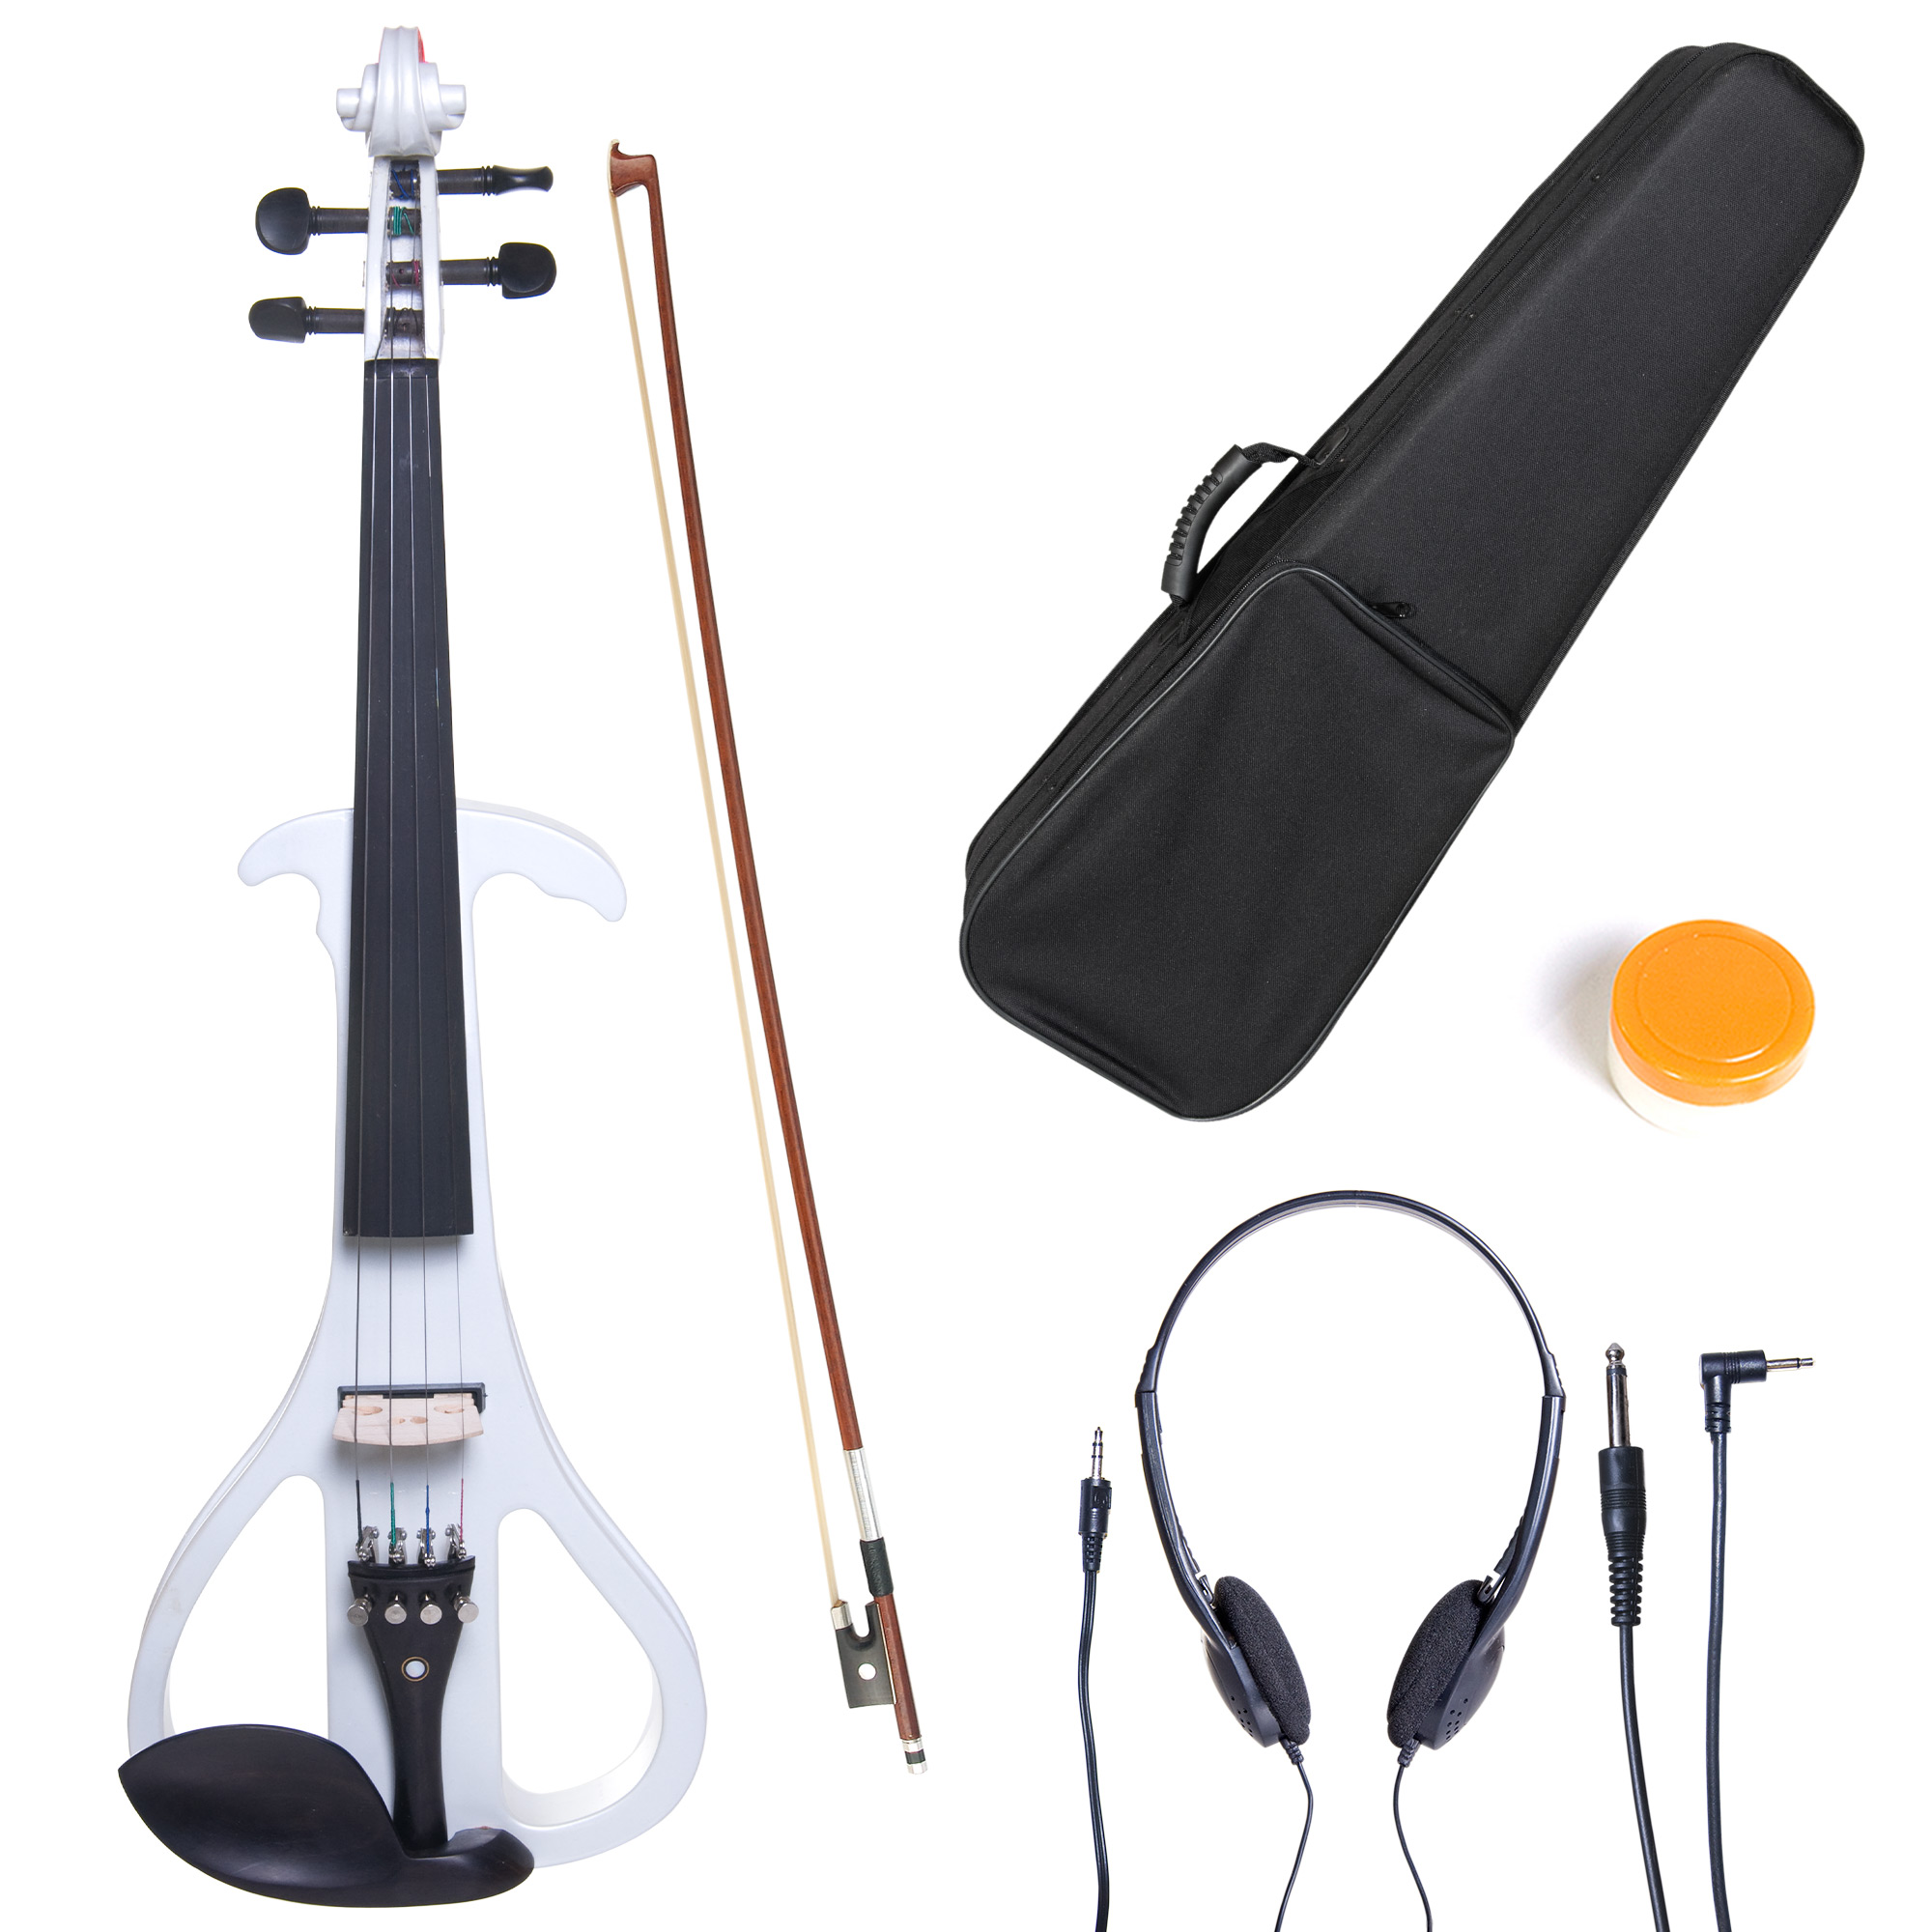 Cecilio 4/4 CEVN-4W Solidwood Pearl White Electric/Silent Violin with Ebony Fittings-Full Size